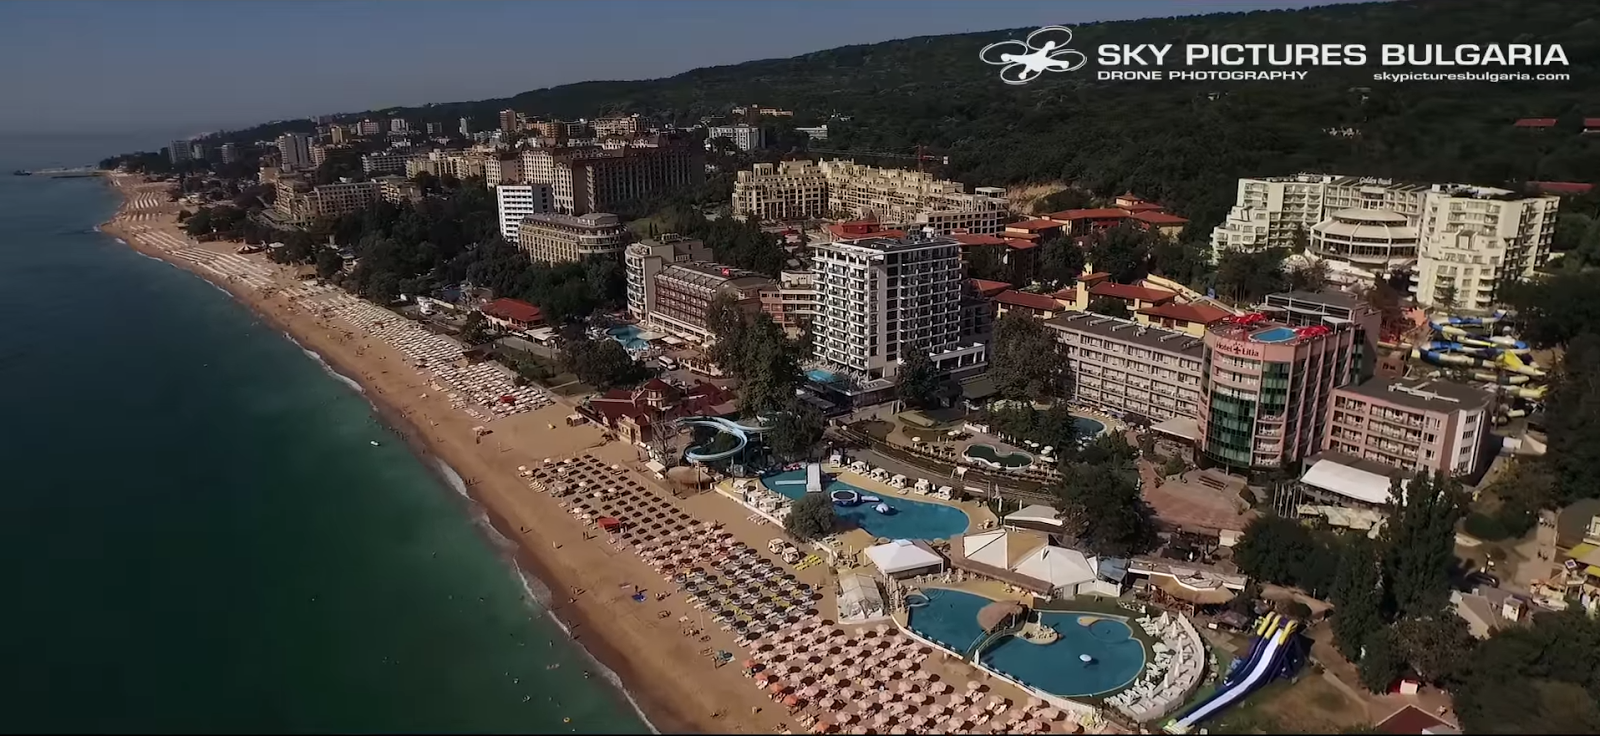 DRONE VIDEO: Bulgaria, The Amazing Country on The Black Sea